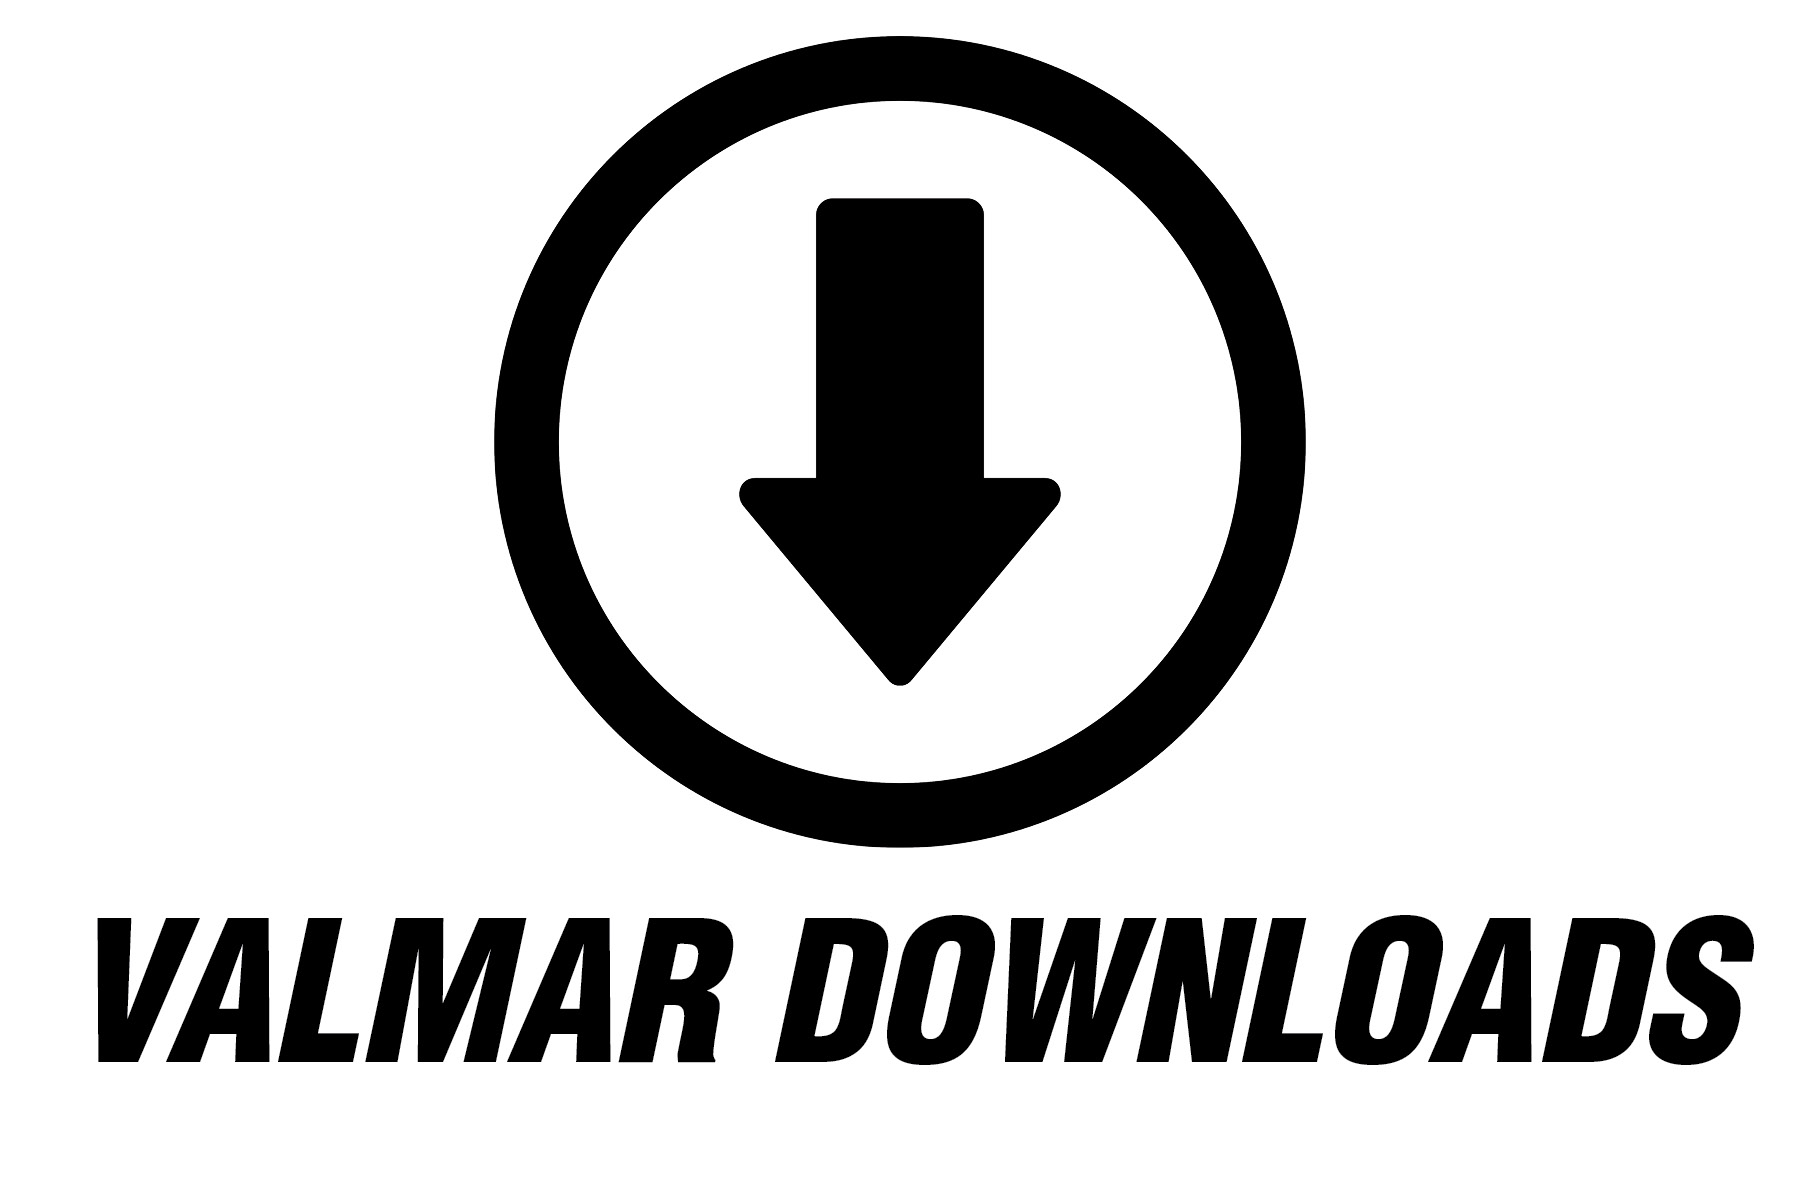 Copy of Valmar Downloads